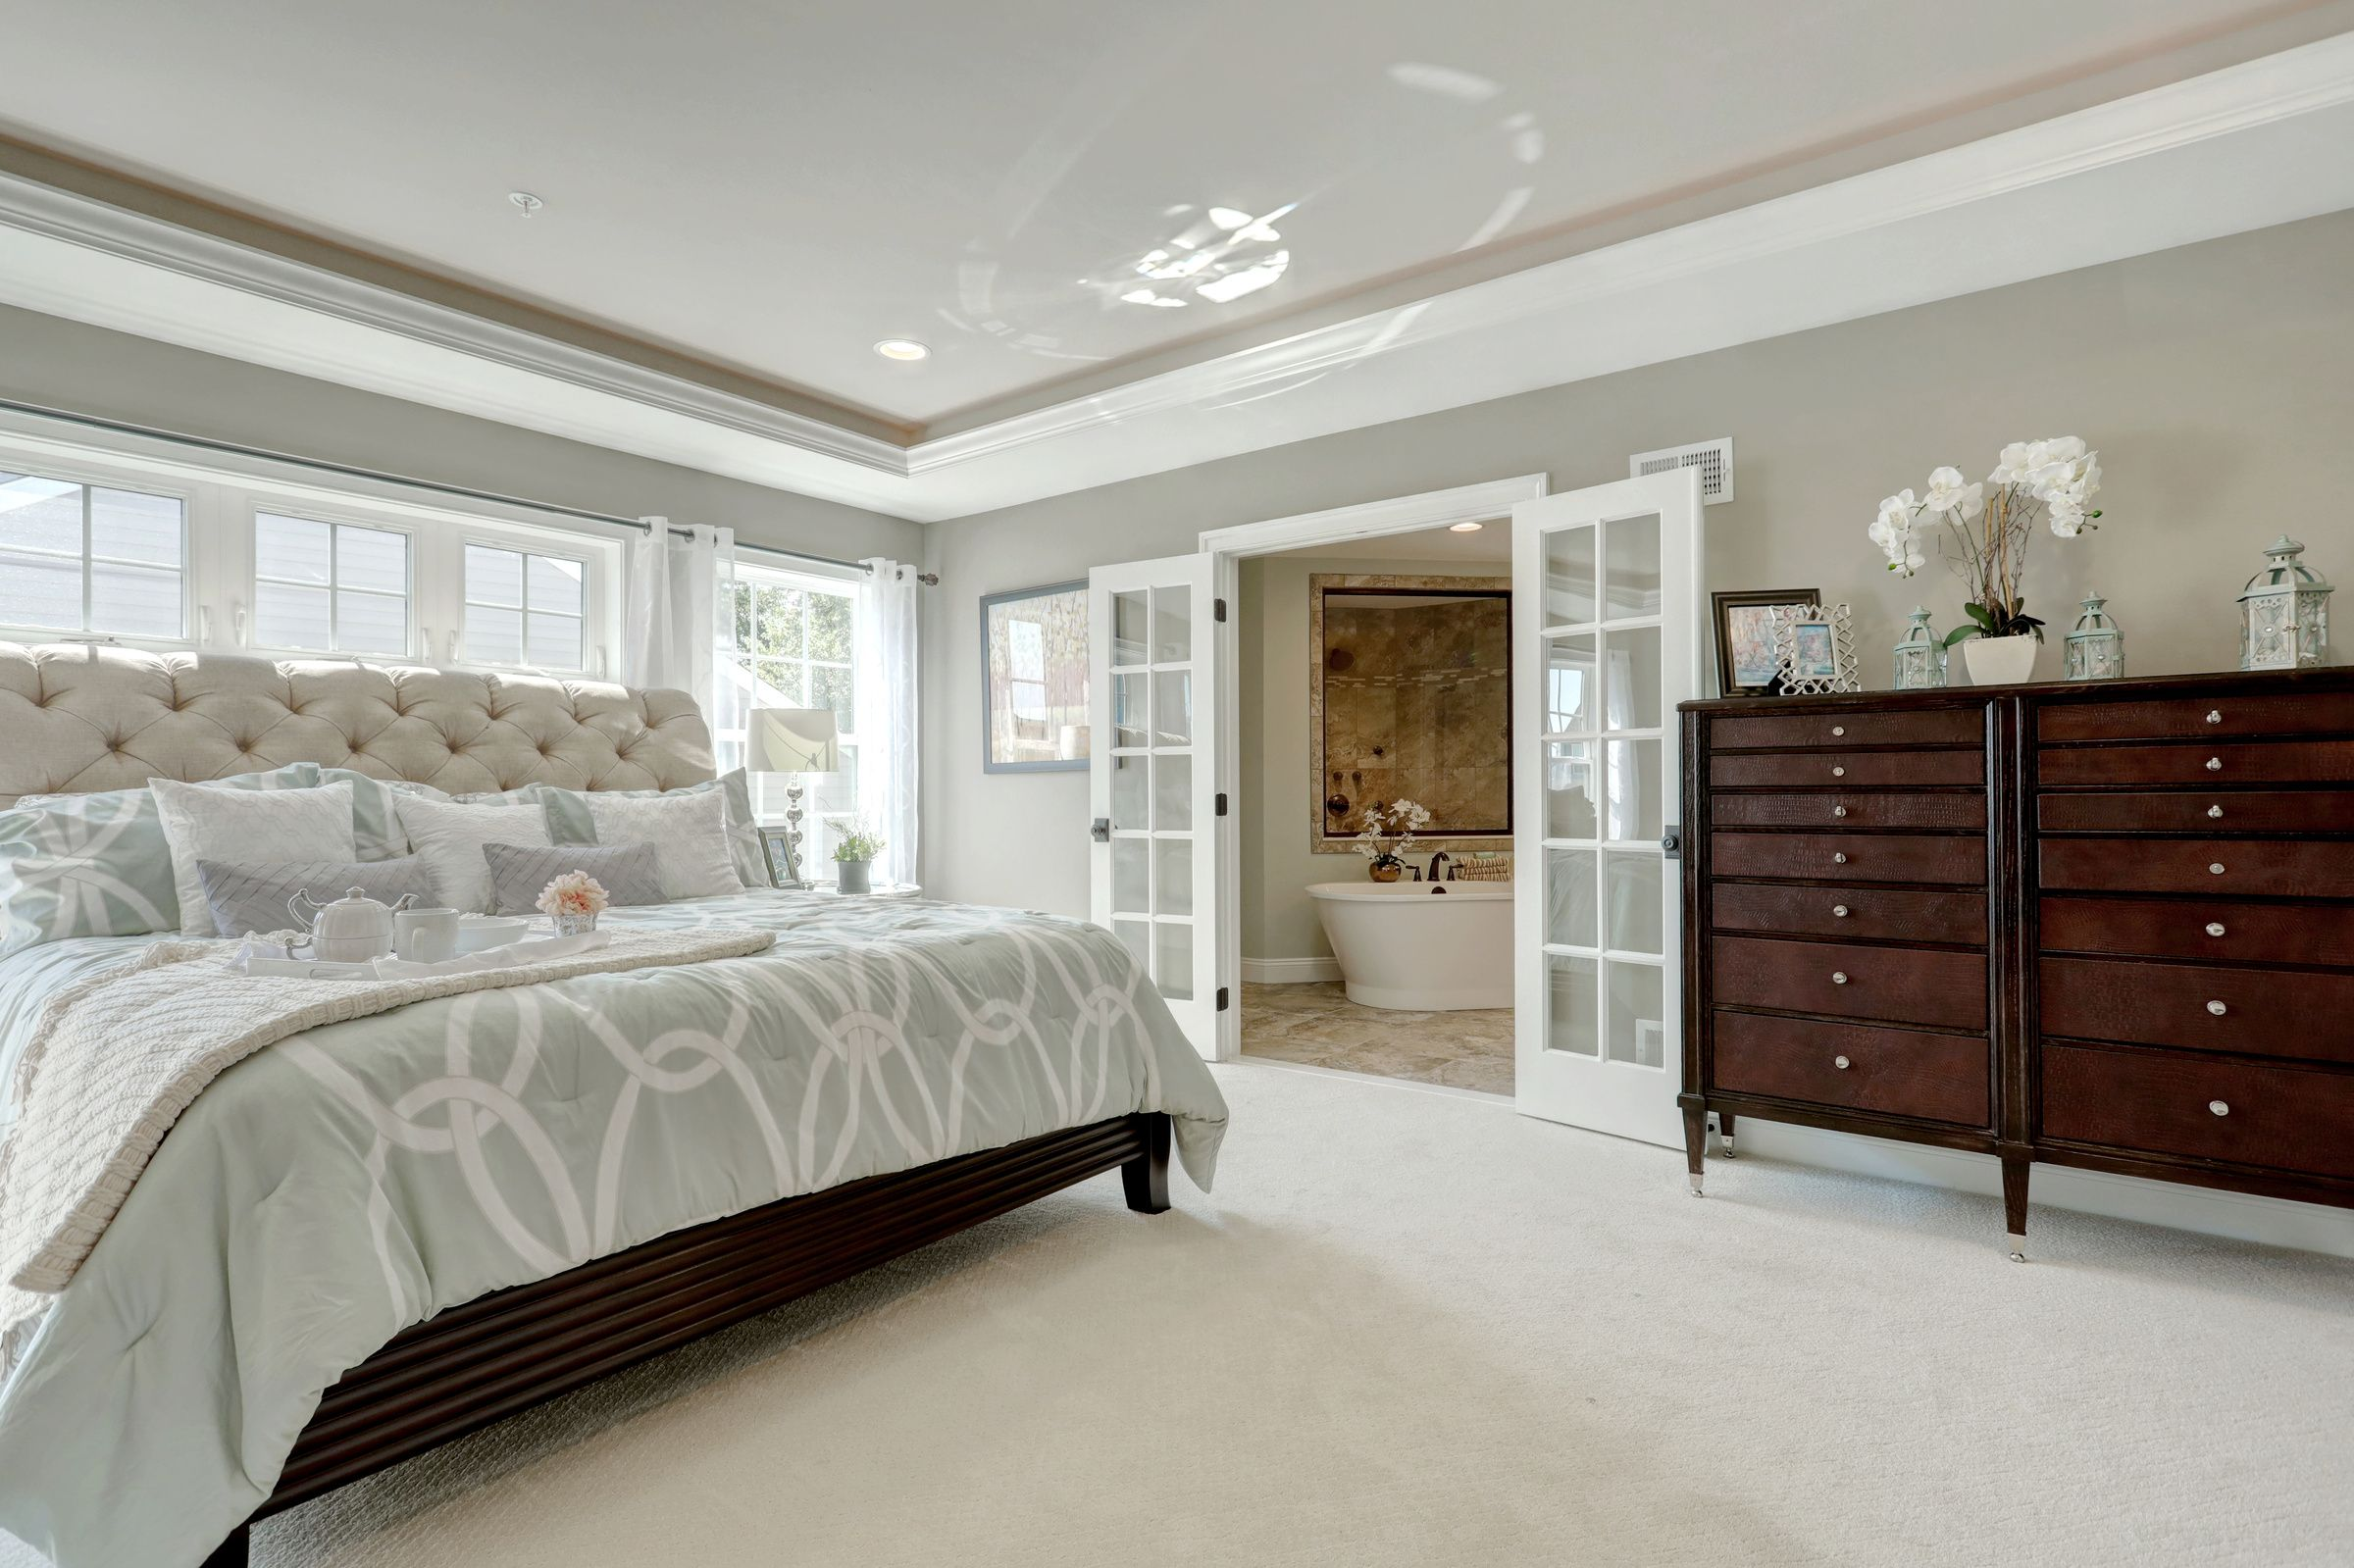 Bedroom featured in the Ethan English Cottage By Keystone Custom Homes in York, PA